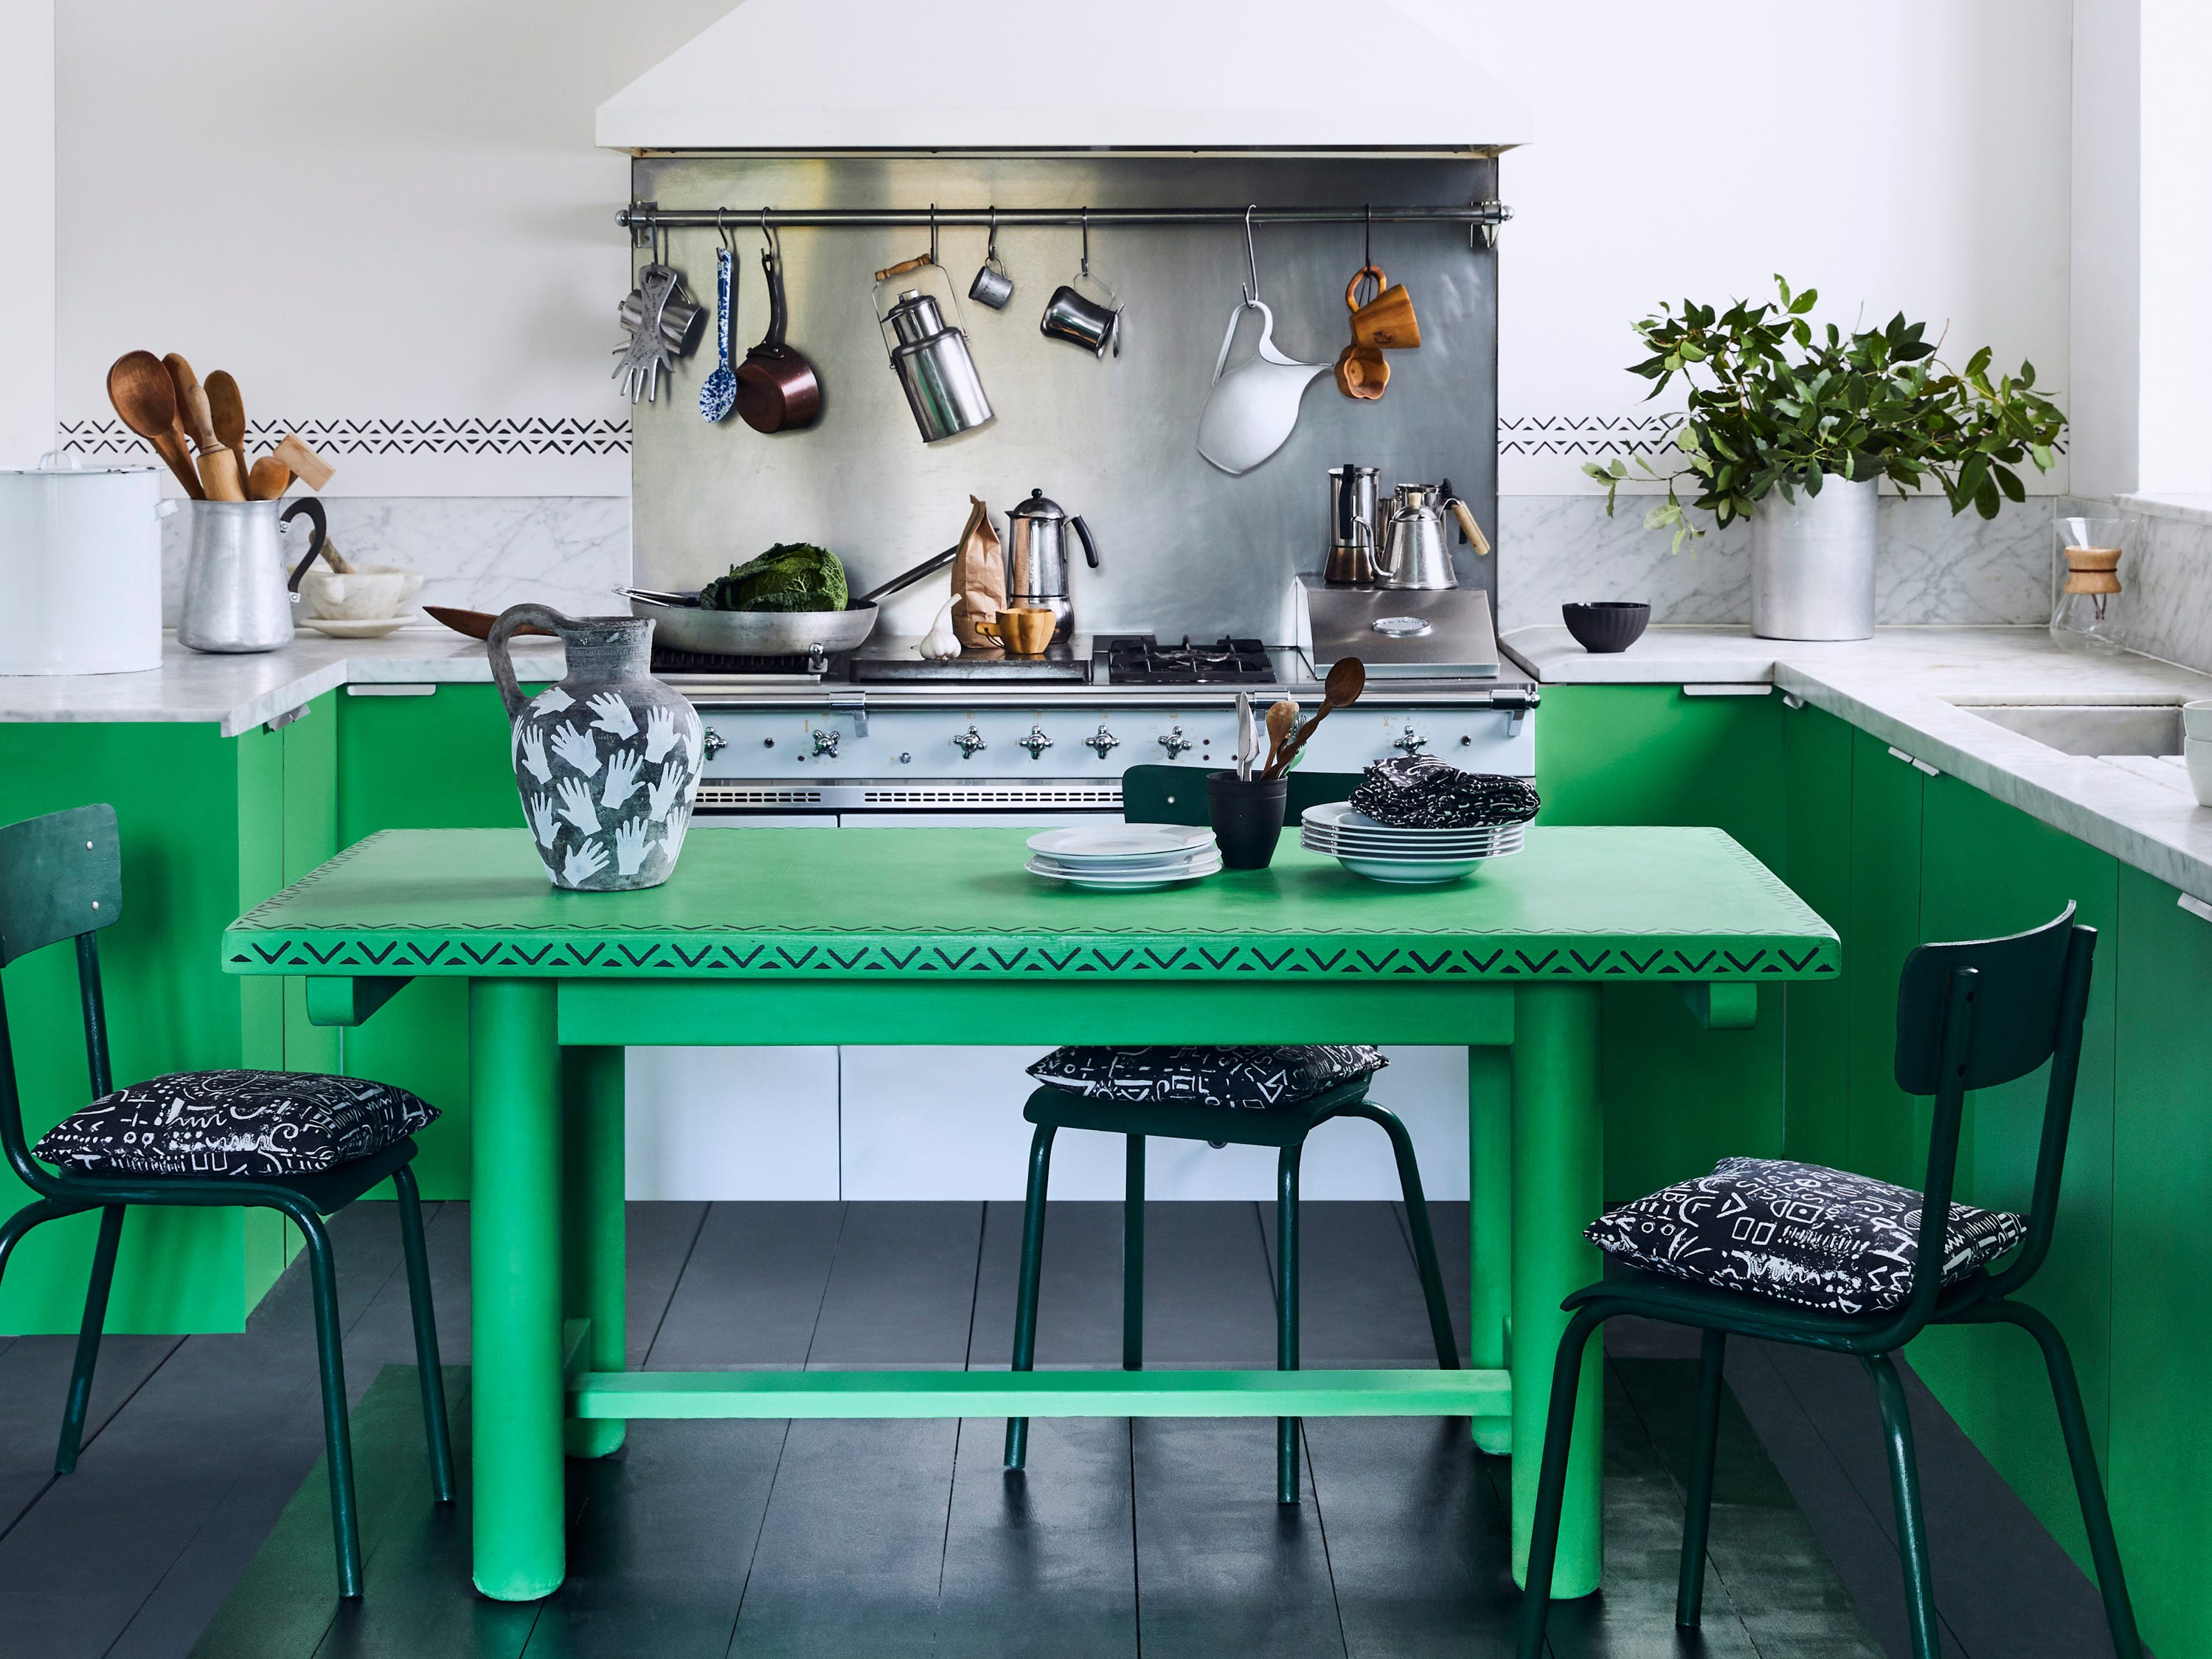 Annie Sloan Chalk Paint is versatile and covers are variety of surfaces. This bold kitchen is done in Antibes Green.